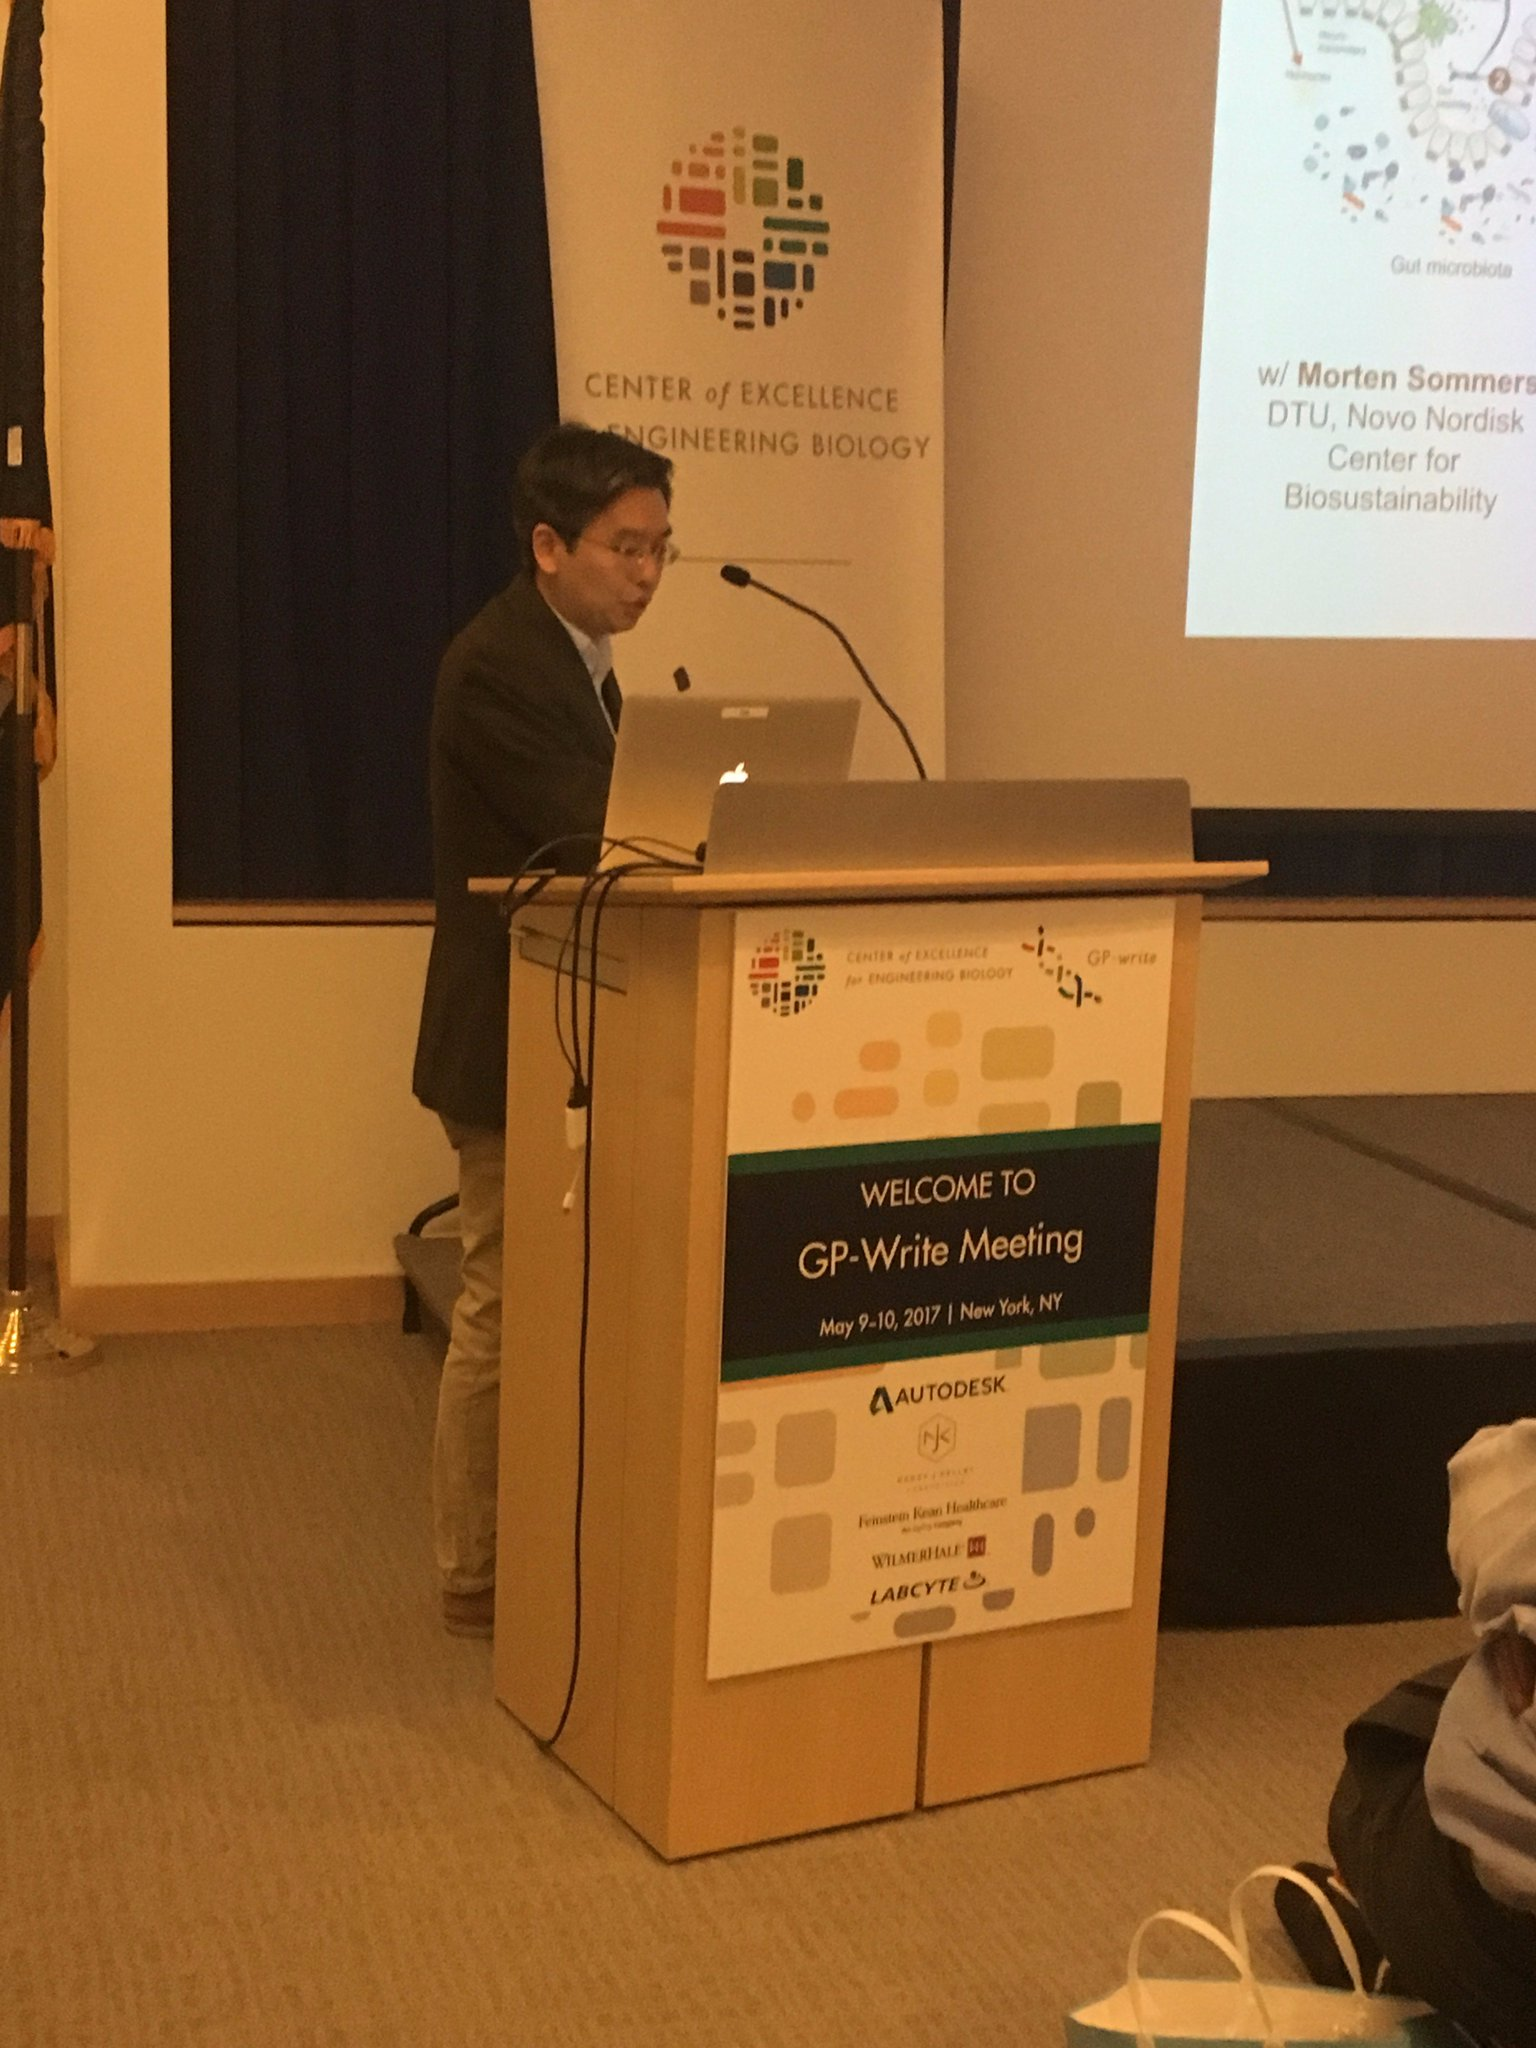 Columbia University's Harris Wang discusses engineering the microbiome and mammalian genome with enhanced metabolic functions. #GPwrite https://t.co/gYMltaCxPK